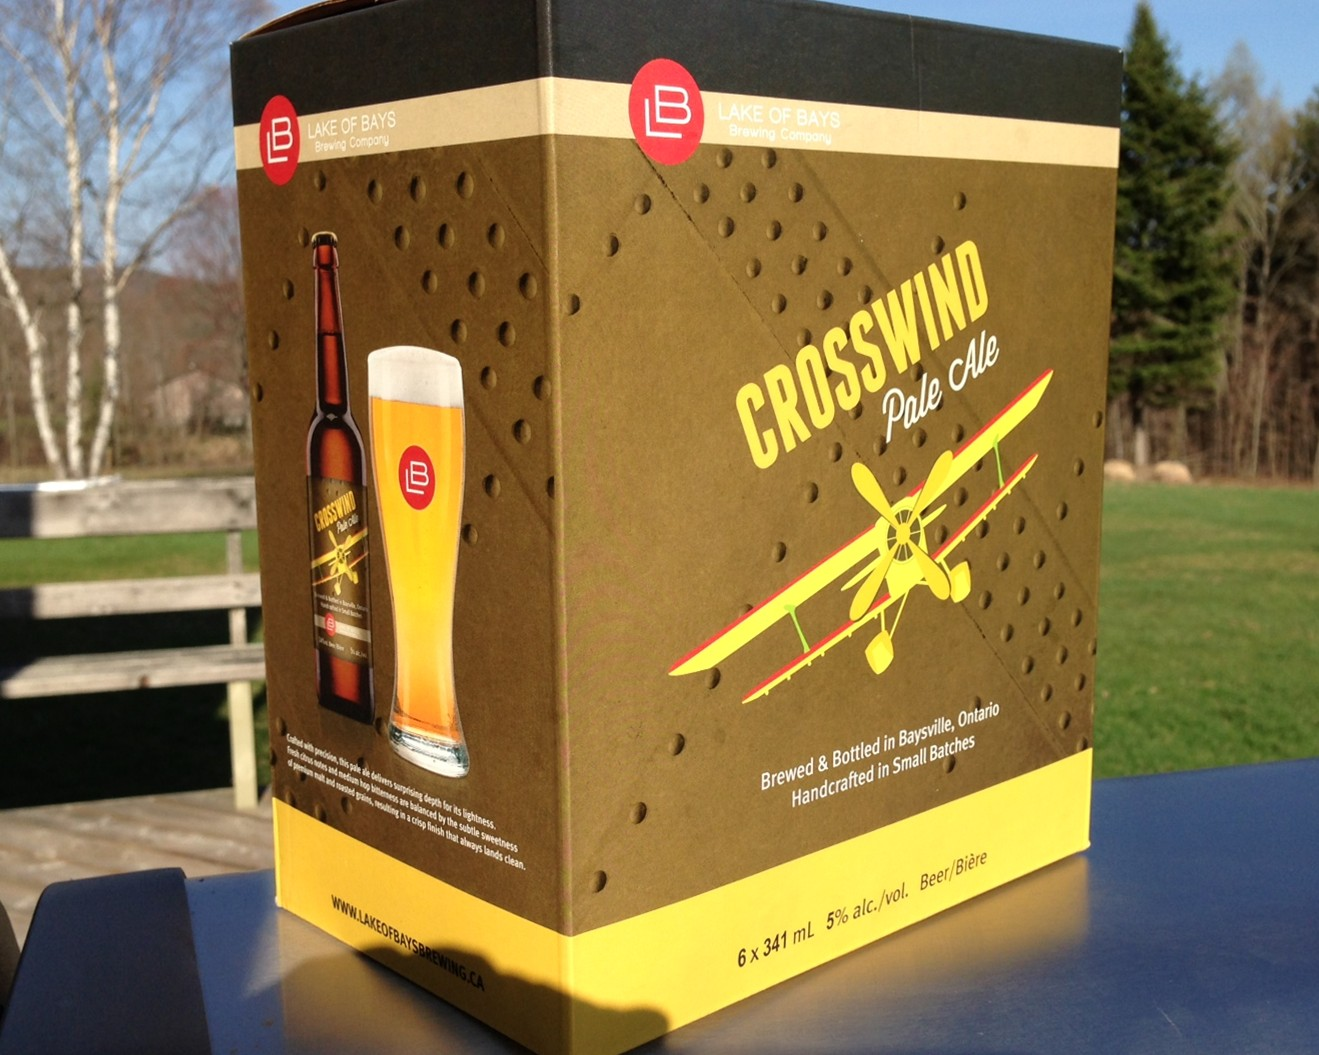 Crosswind beer!